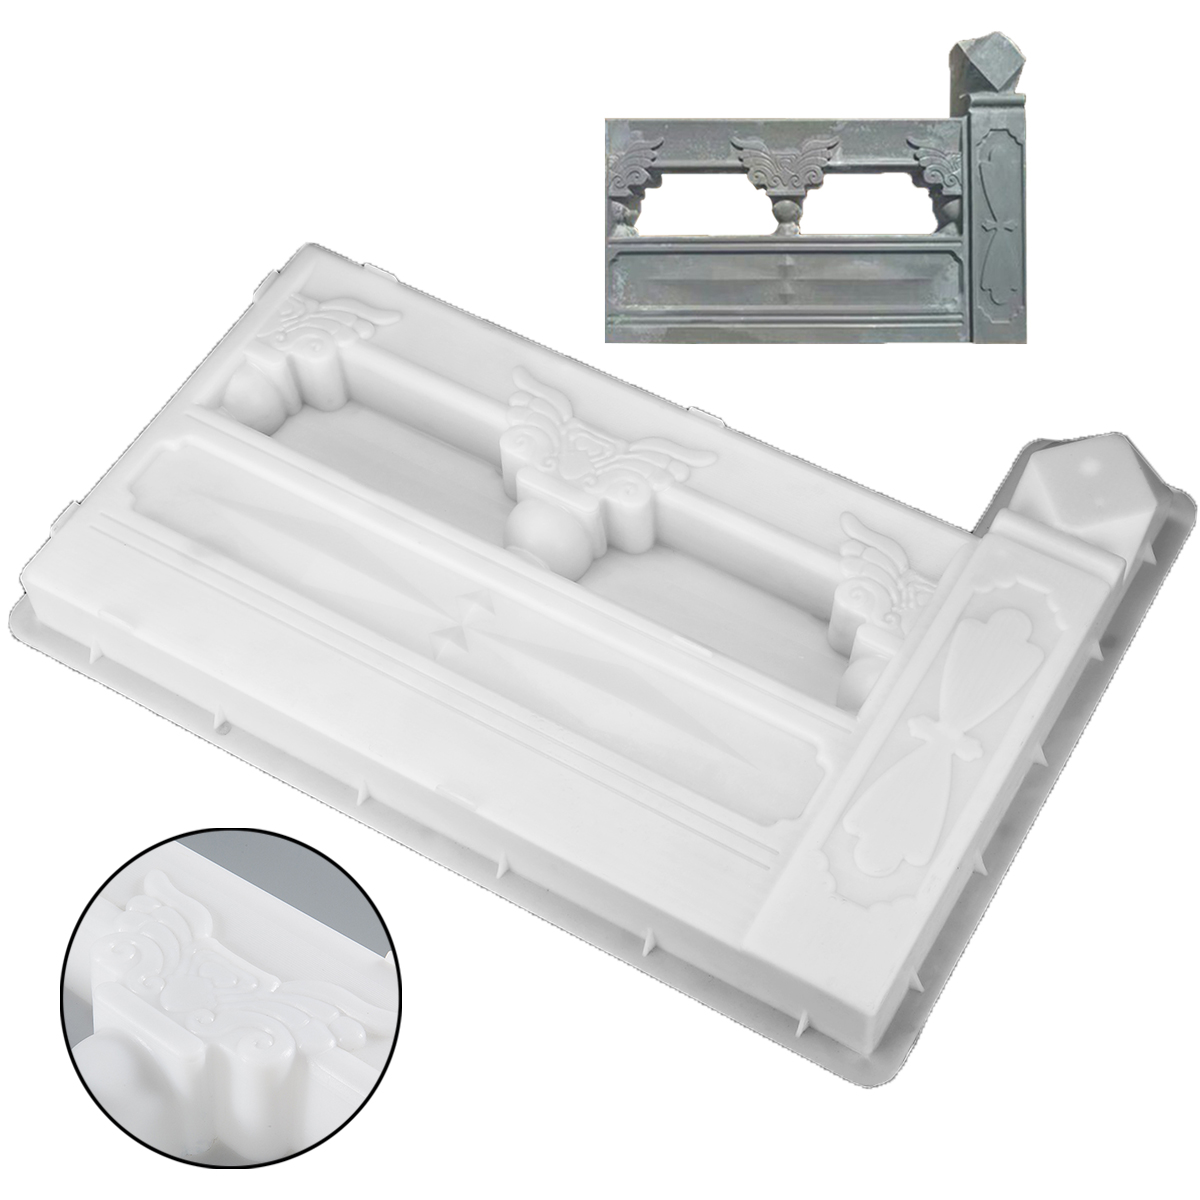 1Pc Concrete Molds Rectangle Garden Fence Mold DIY Flower Pool Plastic Brick Courtyard